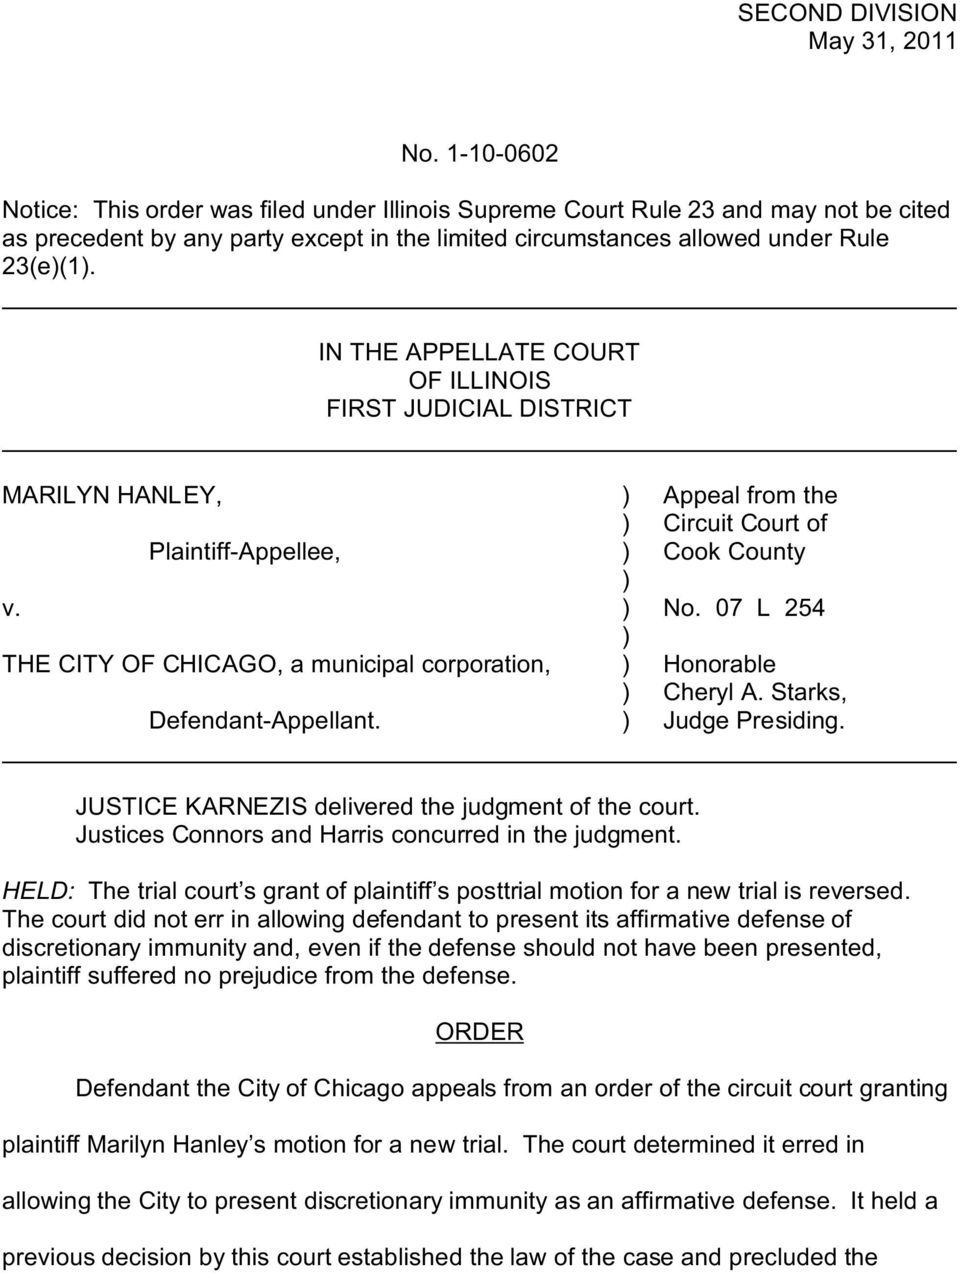 IN THE APPELLATE COURT OF ILLINOIS FIRST JUDICIAL DISTRICT MARILYN HANLEY, Plaintiff-Appellee, v. THE CITY OF CHICAGO, a municipal corporation, Defendant-Appellant.